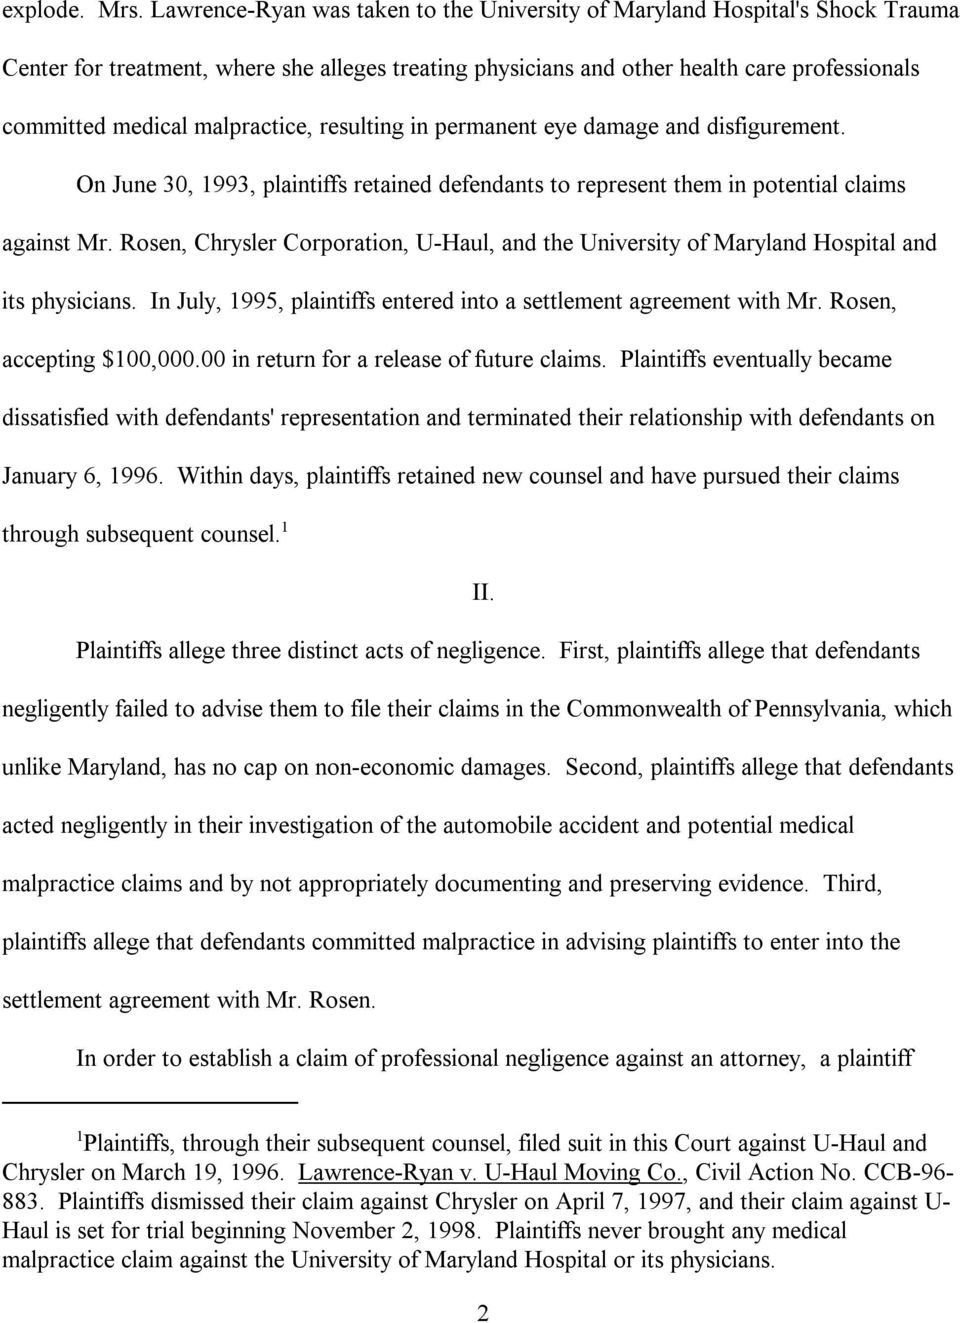 malpractice, resulting in permanent eye damage and disfigurement. On June 30, 1993, plaintiffs retained defendants to represent them in potential claims against Mr.